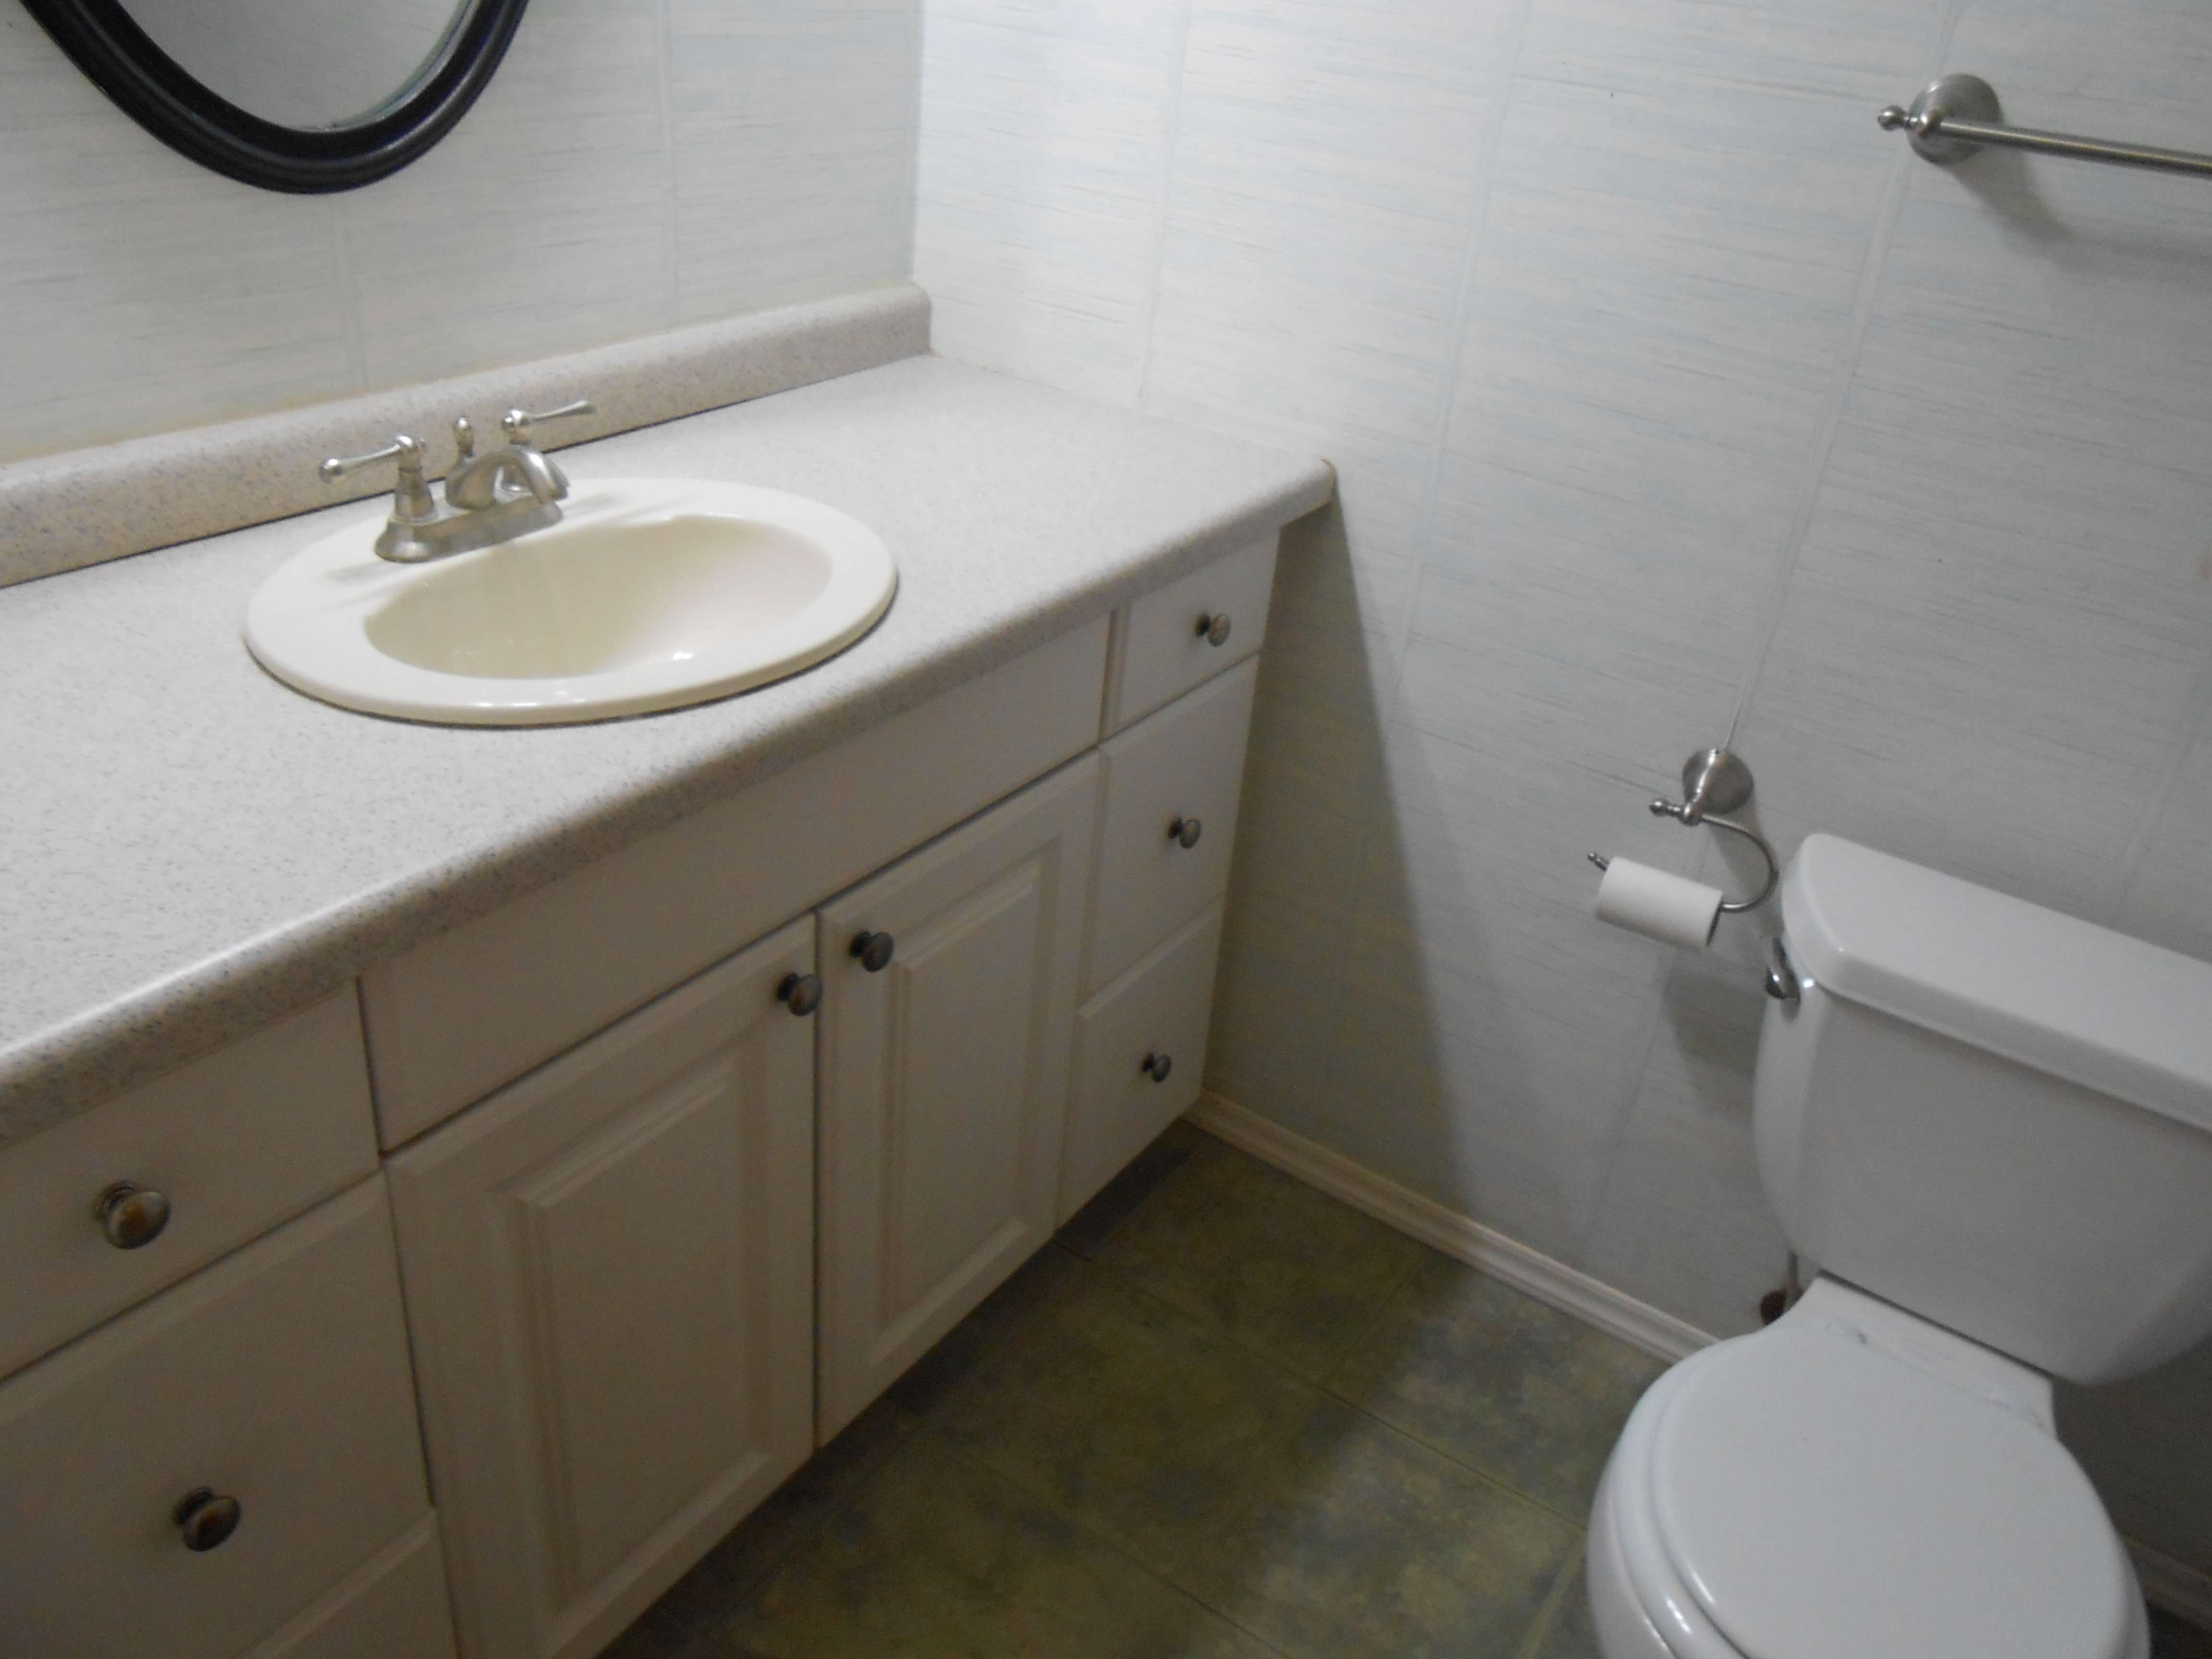 3 Bedroom 2 Bath  1 018 sq  ft for Sale. Homes For Sale